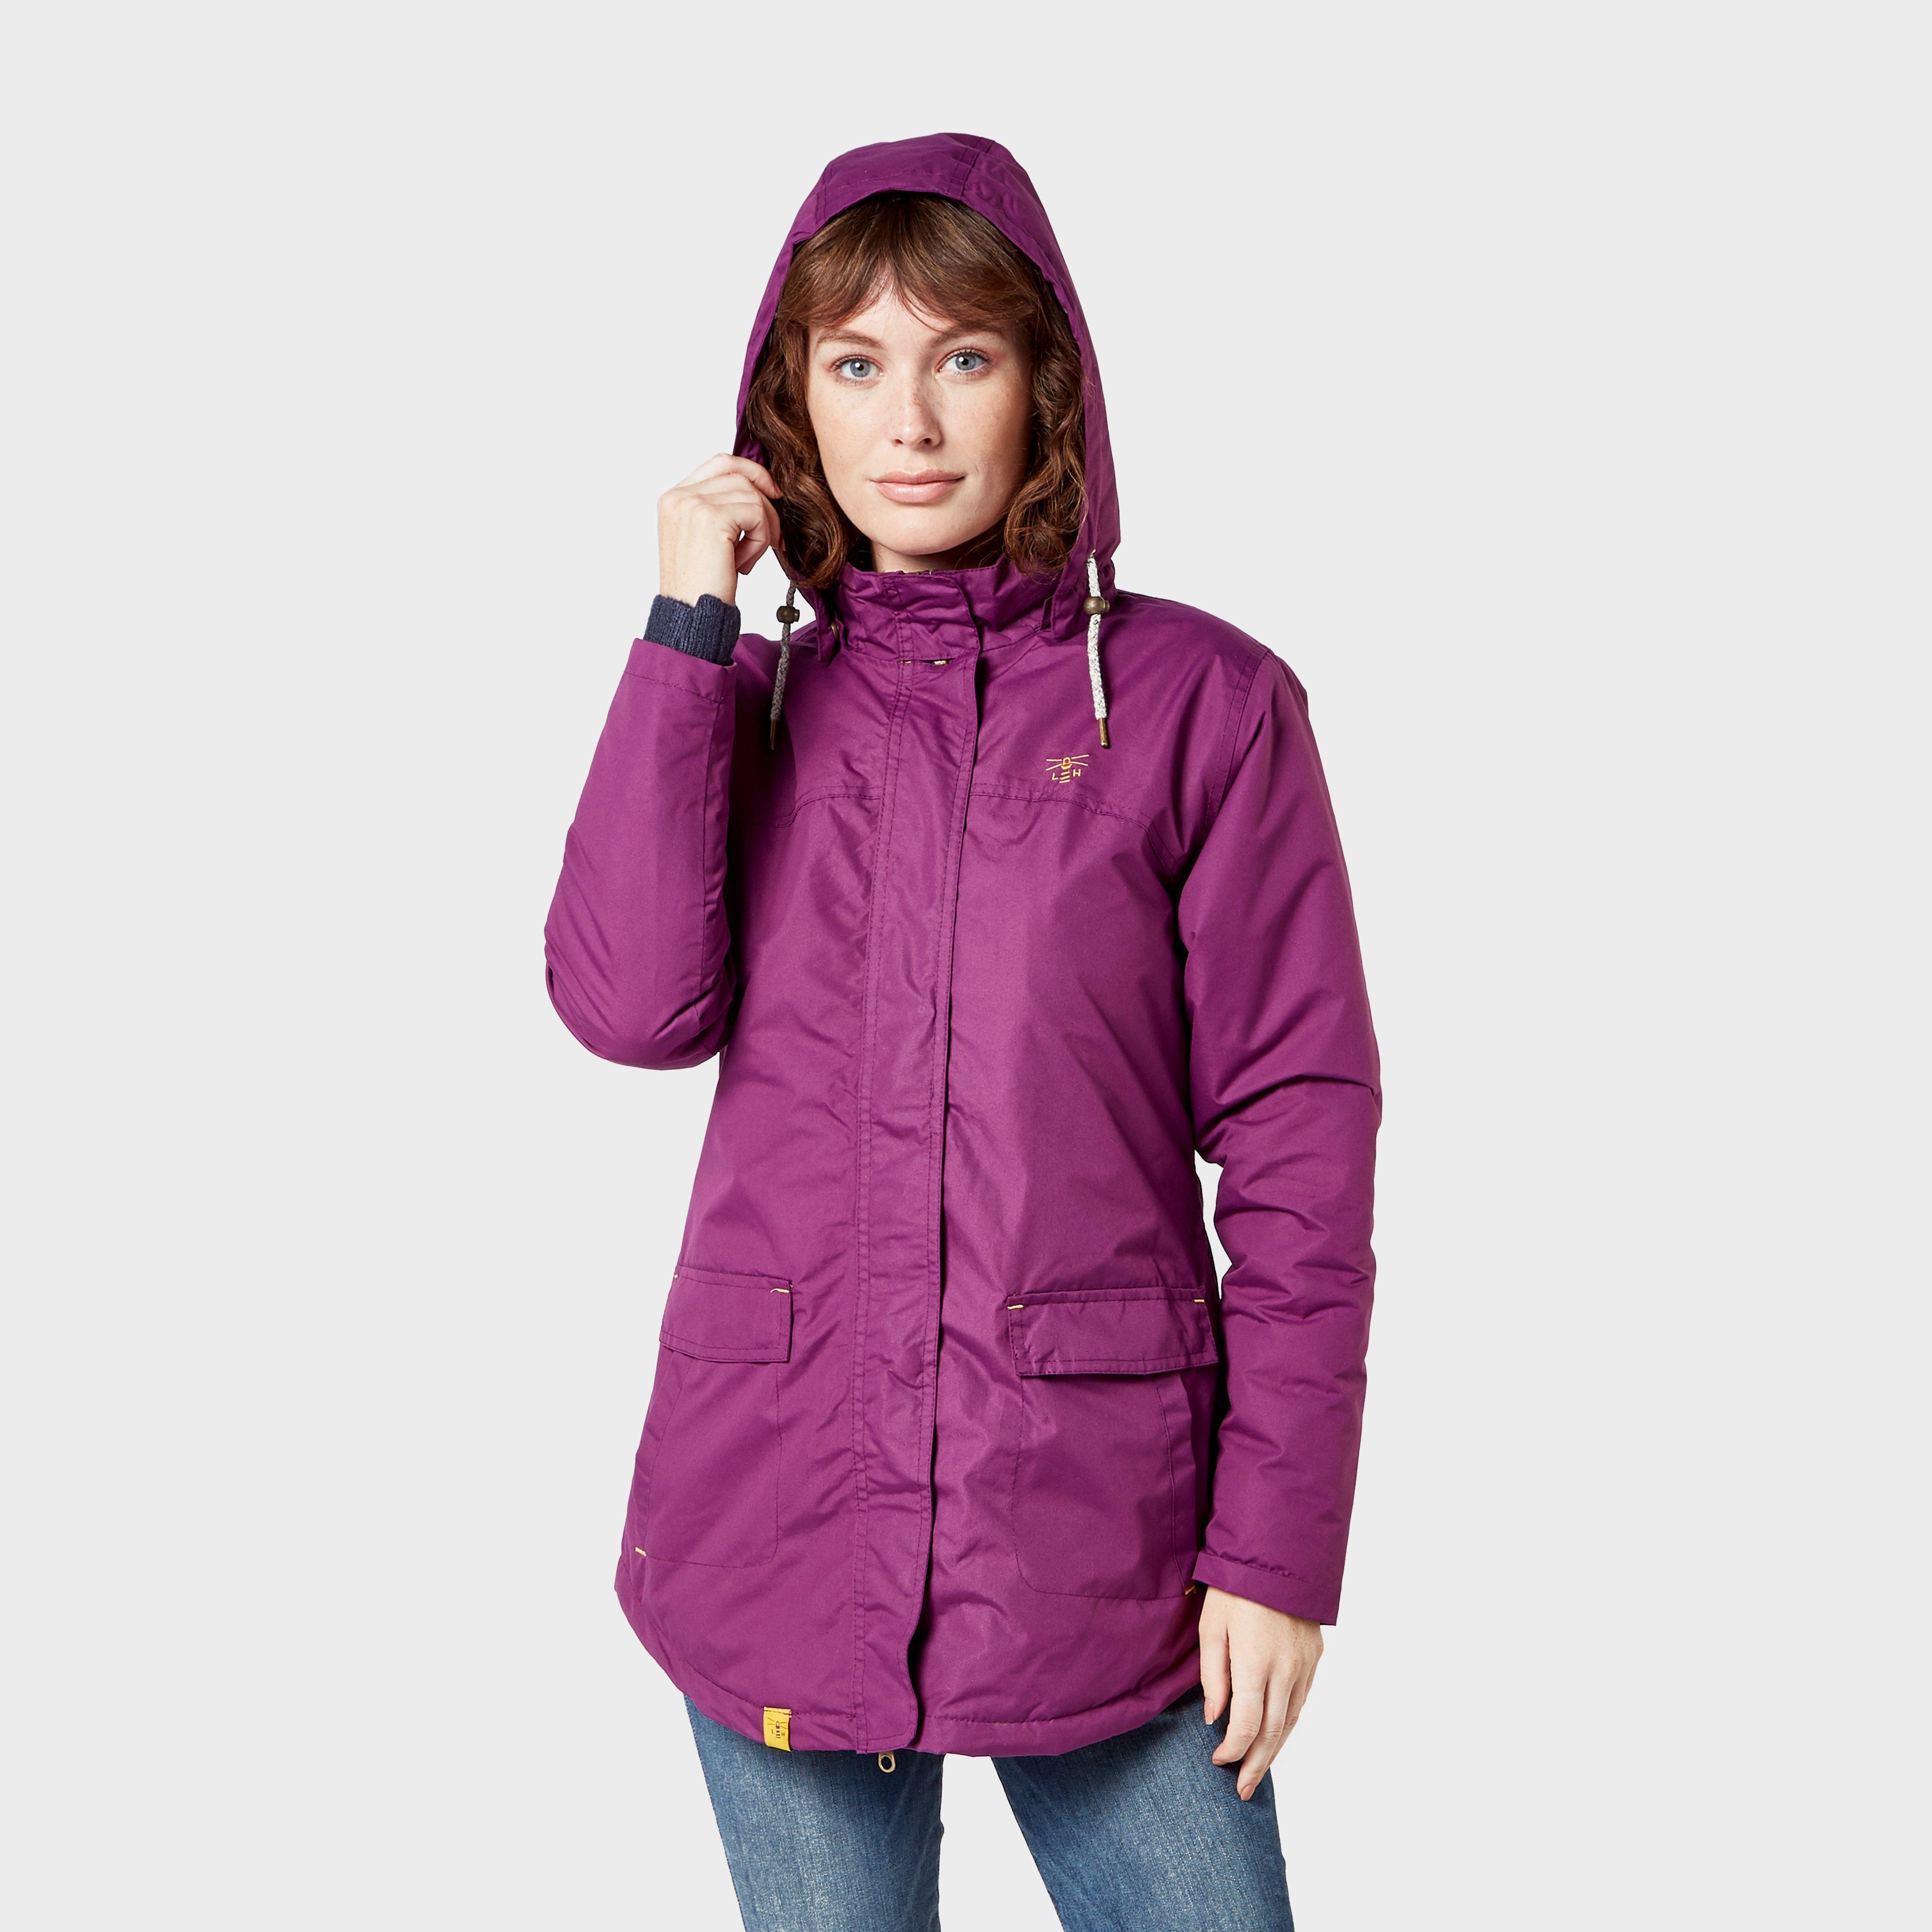 Lighthouse Women's Iona Waterproof Jacket, Purple